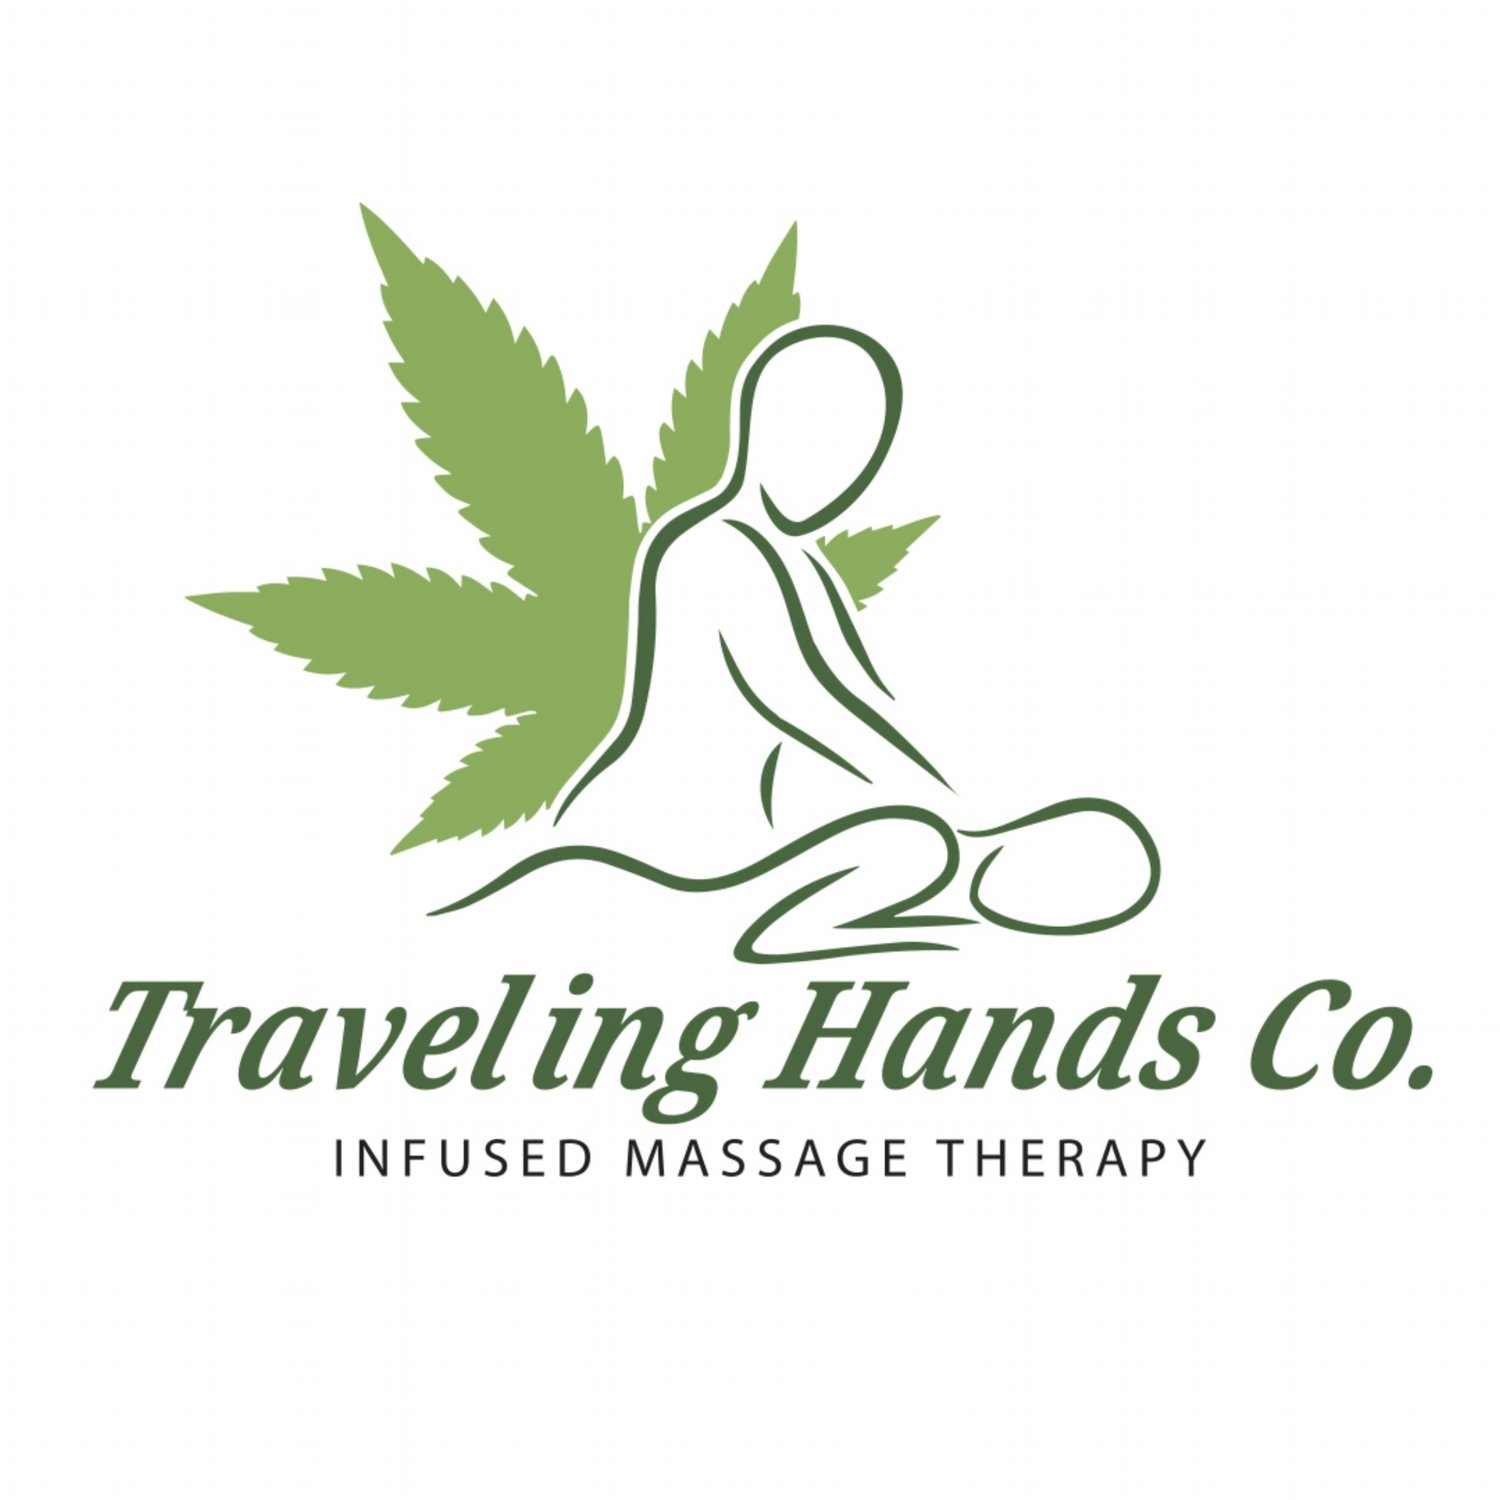 Traveling Hands Company